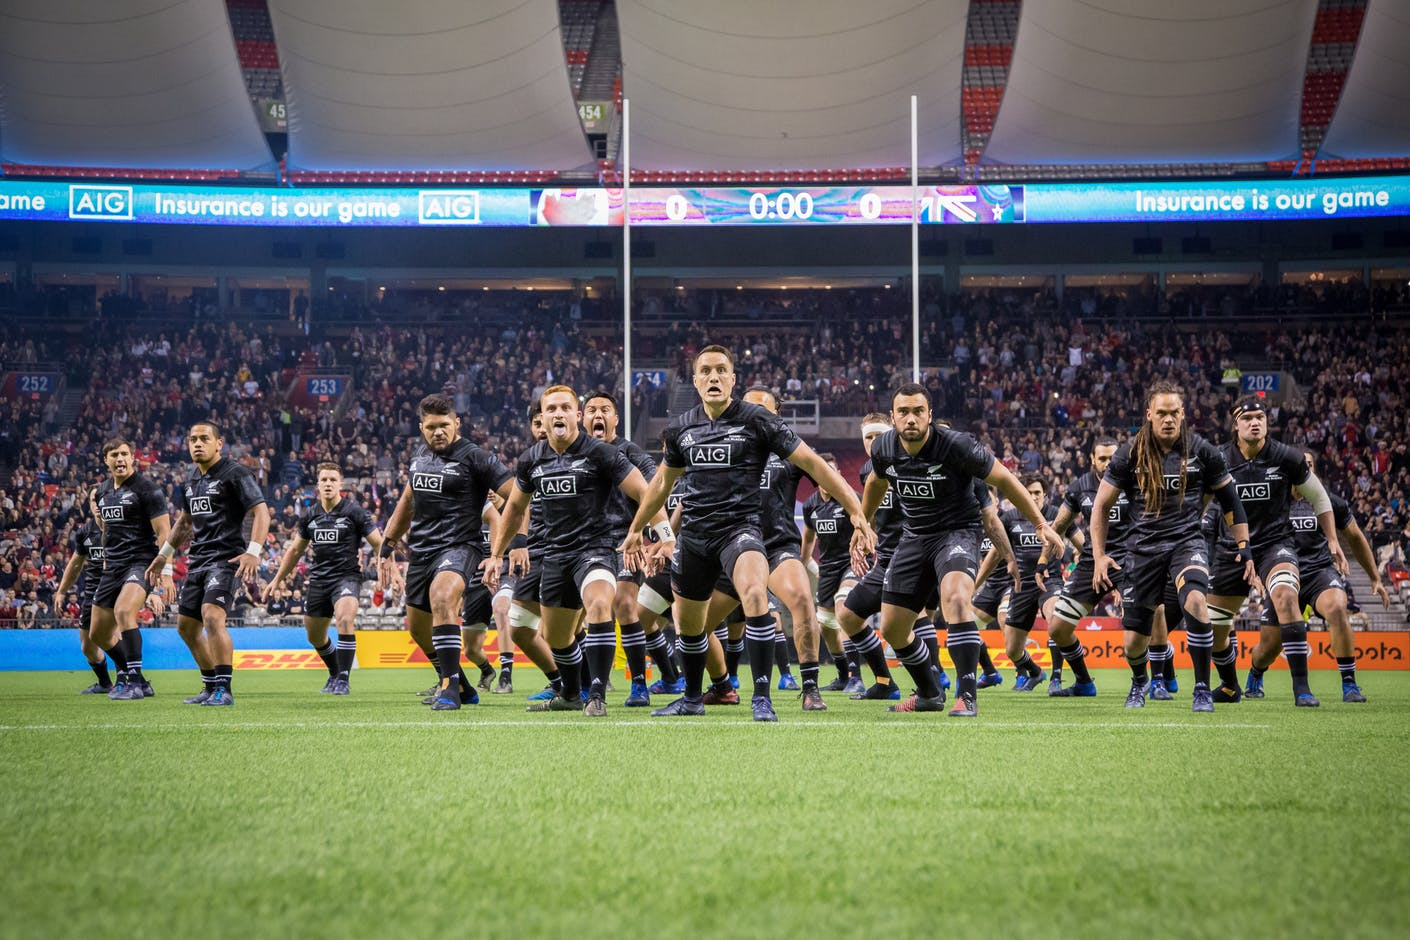 Vancouver Bc, Halloween 2020 World class rugby comes to Vancouver Halloween 2020 – BC Place